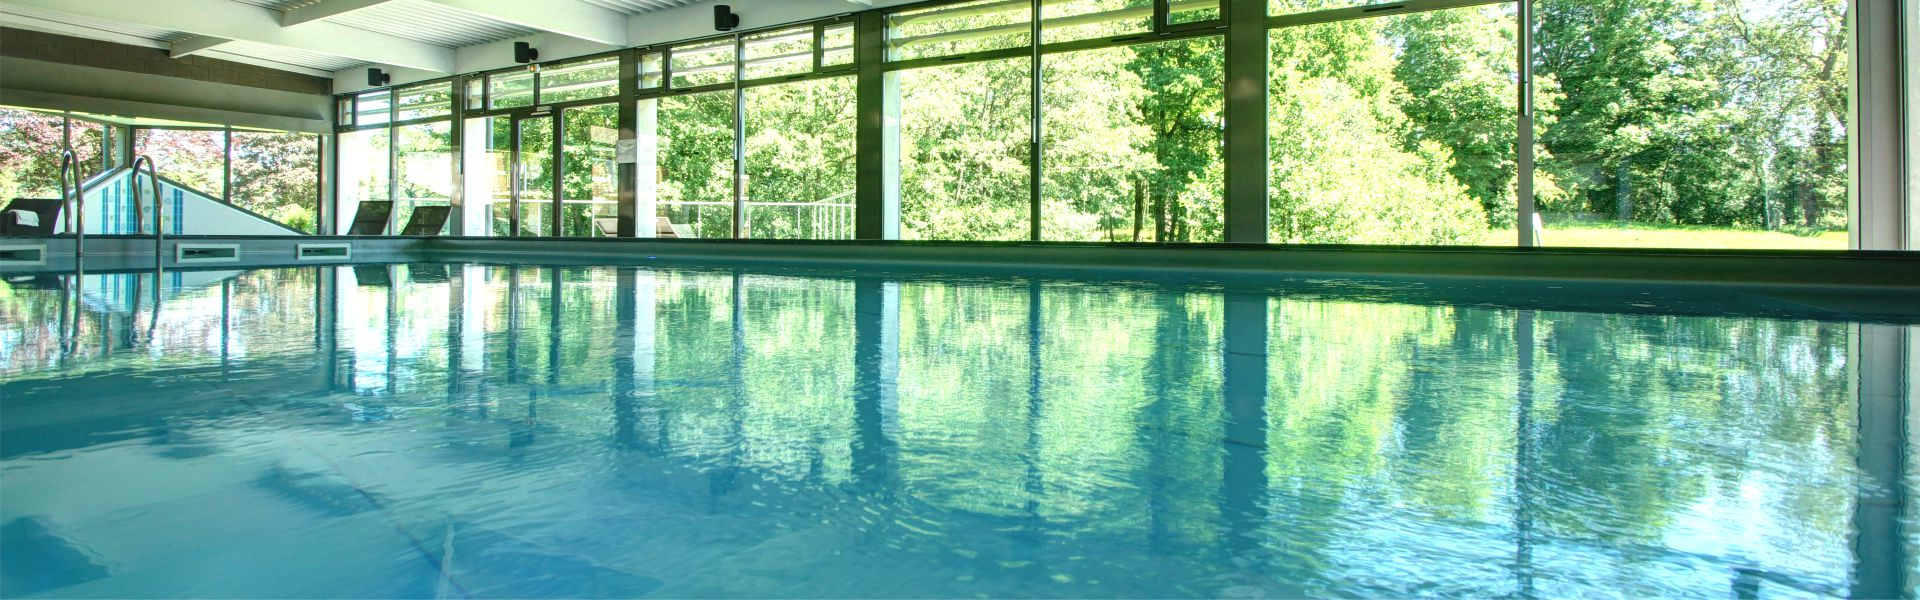 Piscine du Najeti Hôtel Château Tilques indoor Pool